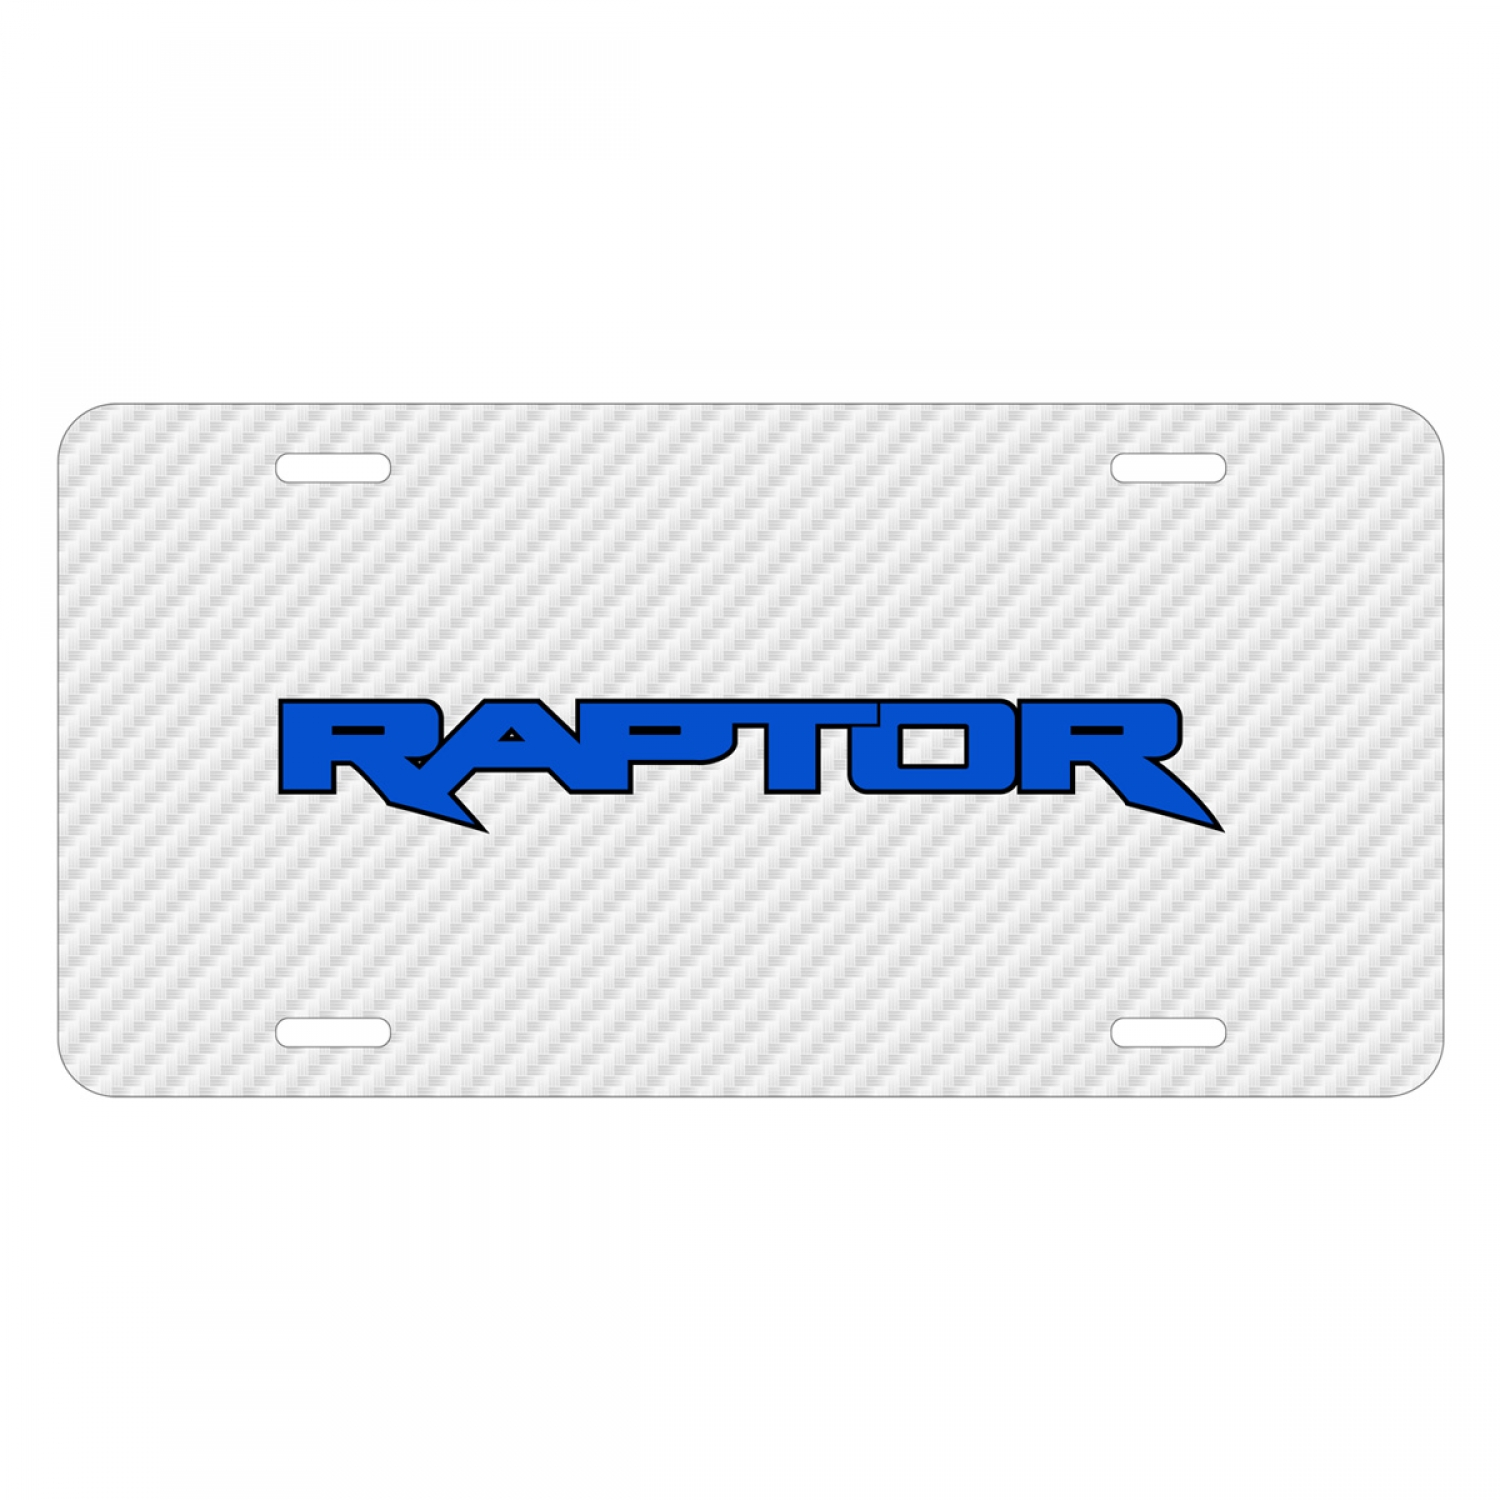 Ford F-150 Raptor 2017 in Blue White Carbon Fiber Texture Graphic UV Metal License Plate